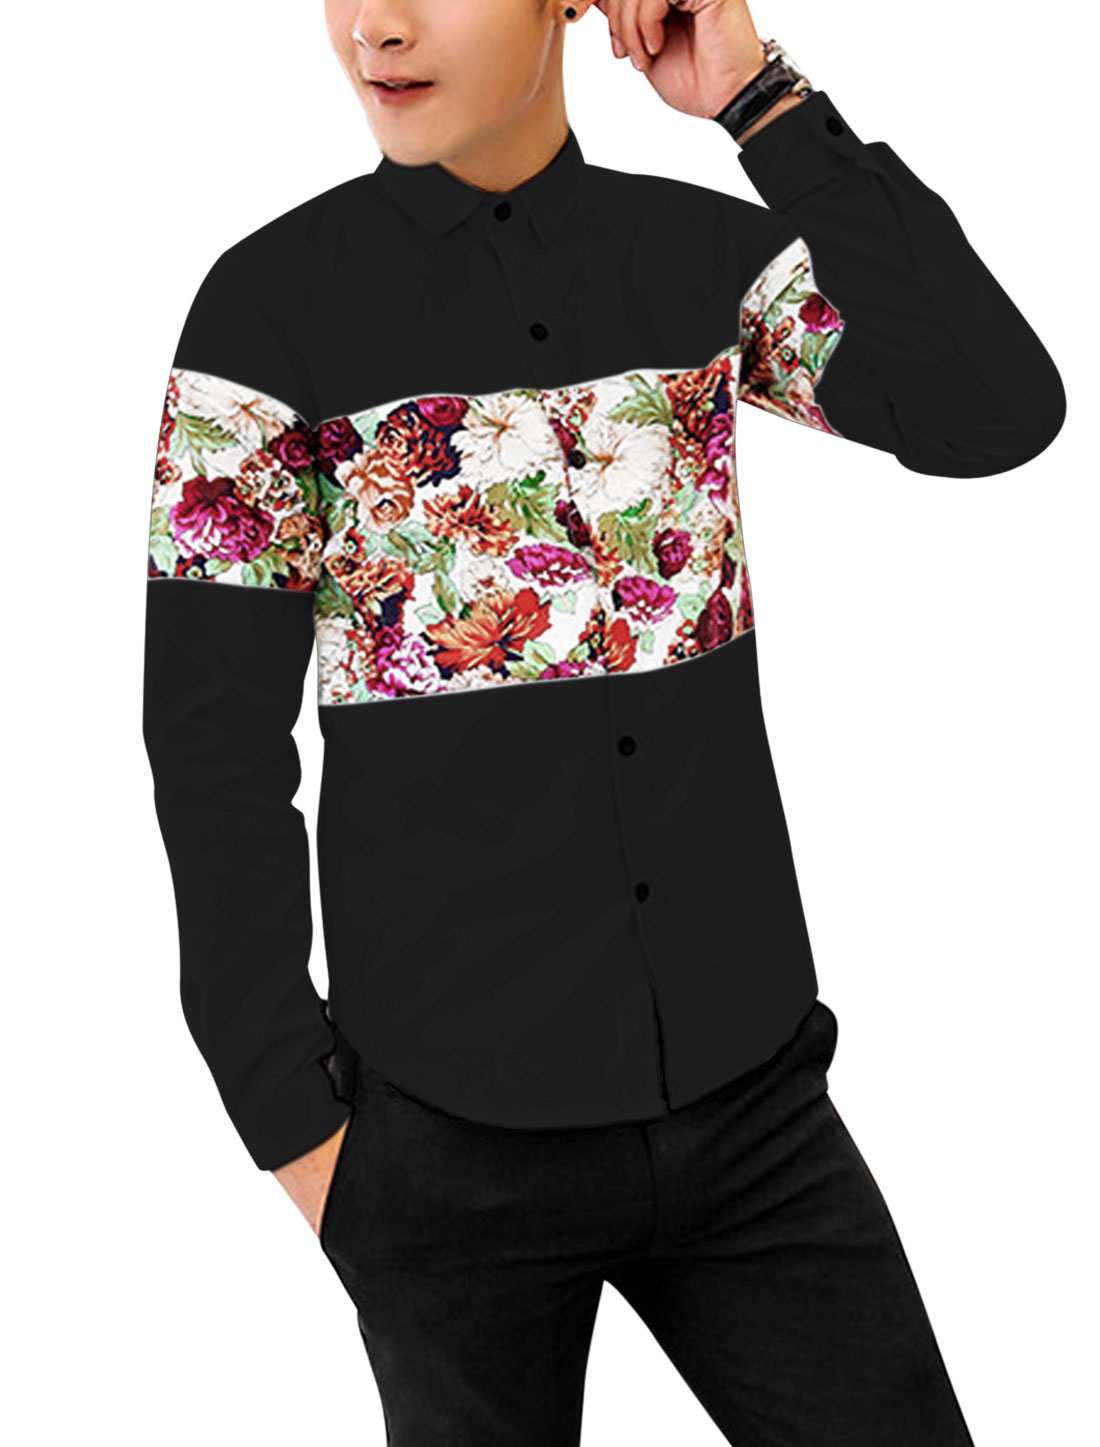 Men Point Collar Contrast Floral Print Color Block Stylish Shirt Black M